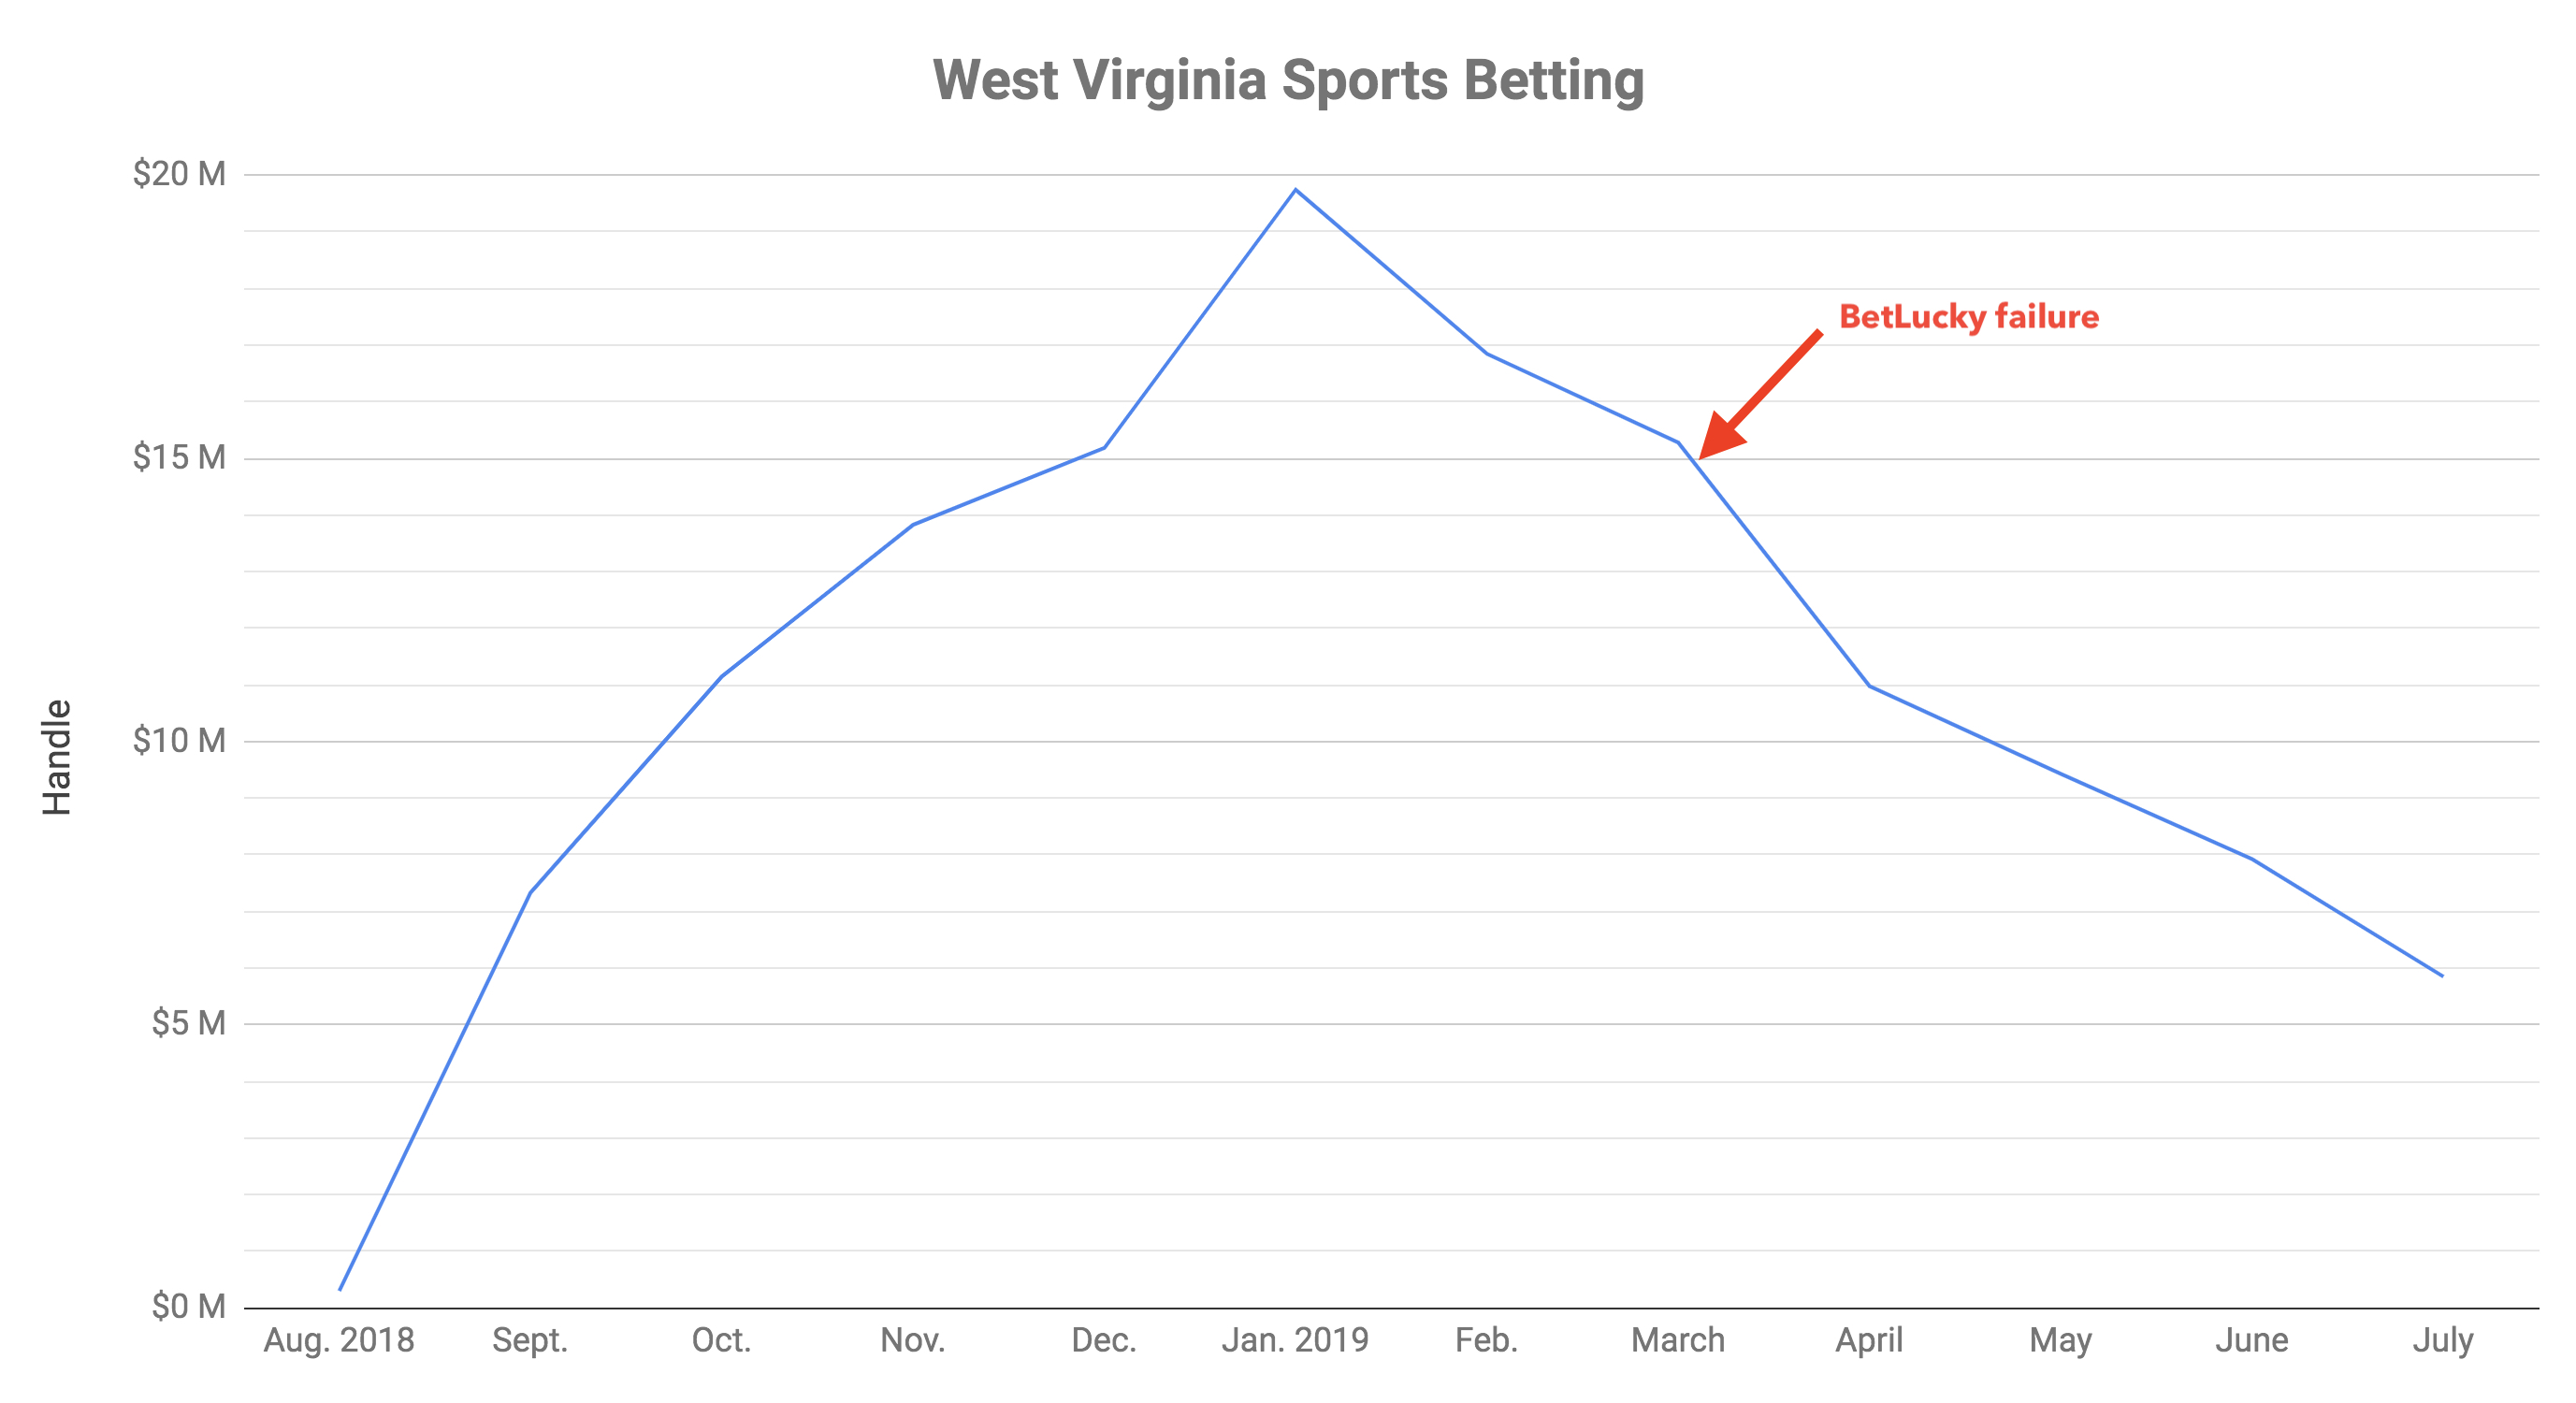 WV sports betting handle - Lifetime